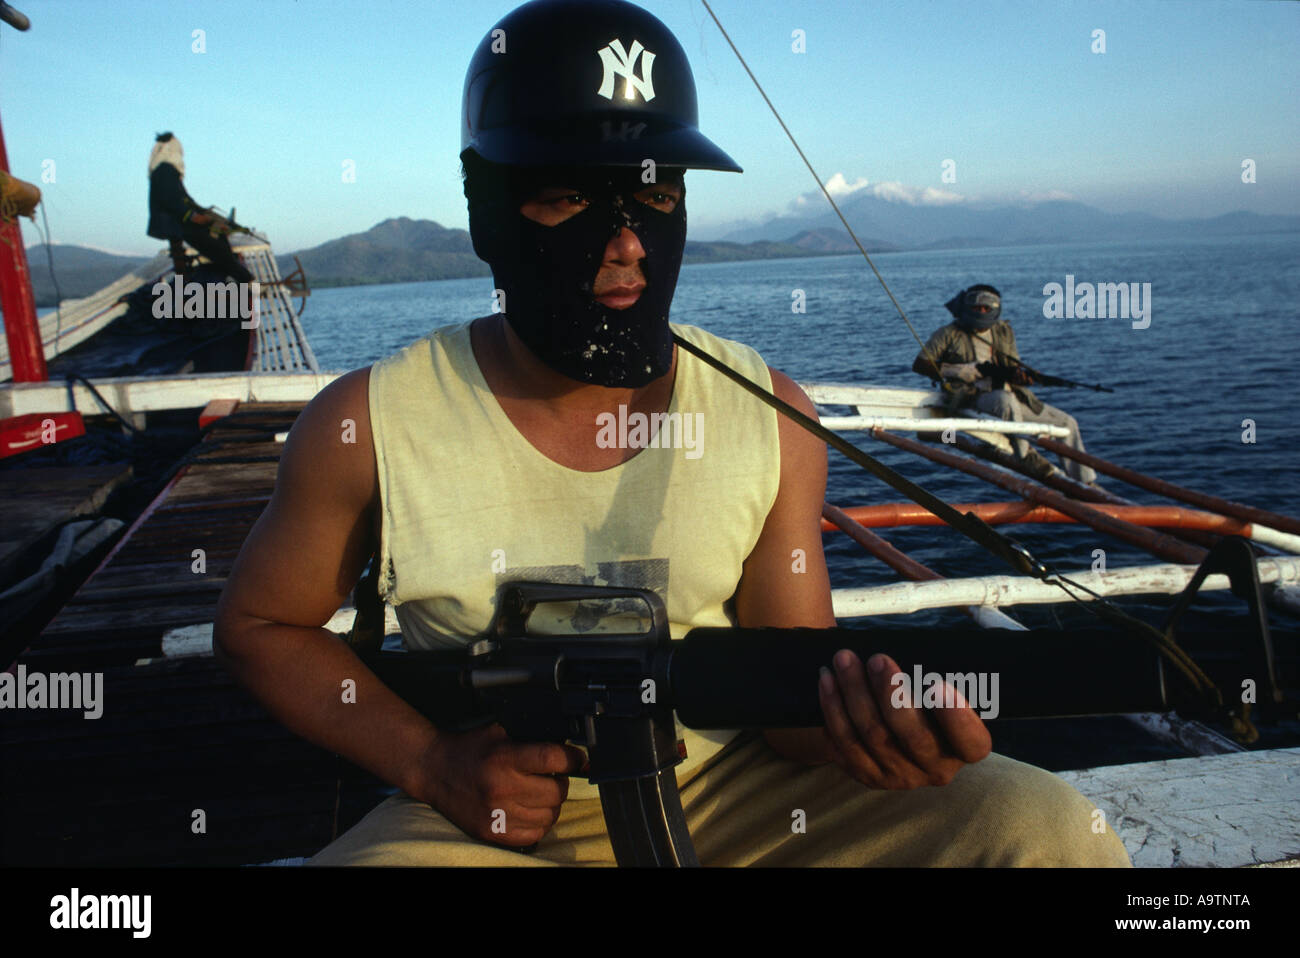 Pirate Tony keeps a look-out, armed with an M16. - Stock Image